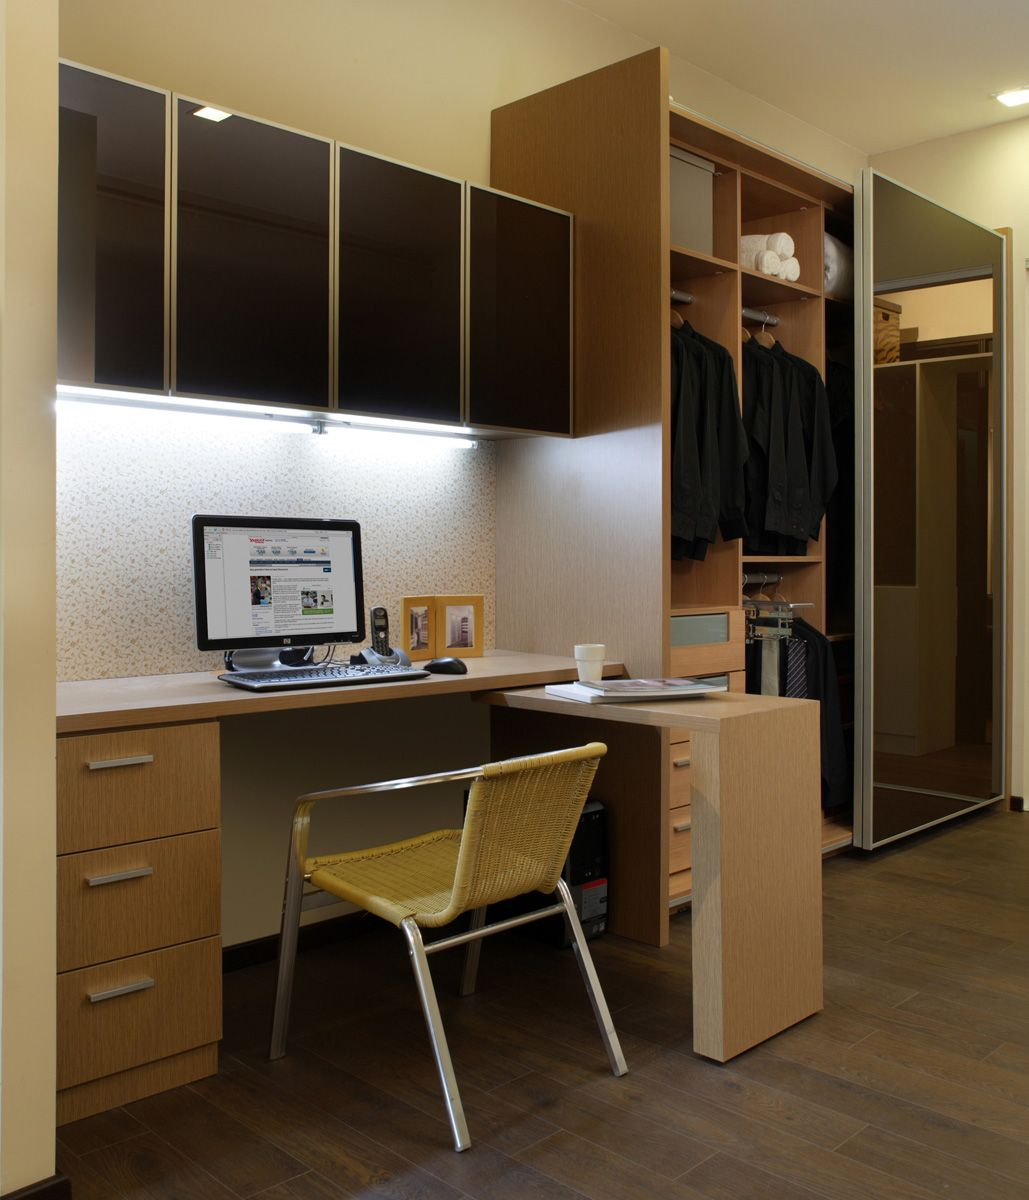 Study Room At Home: Study Table With Wall Cabinet & Wardrobe